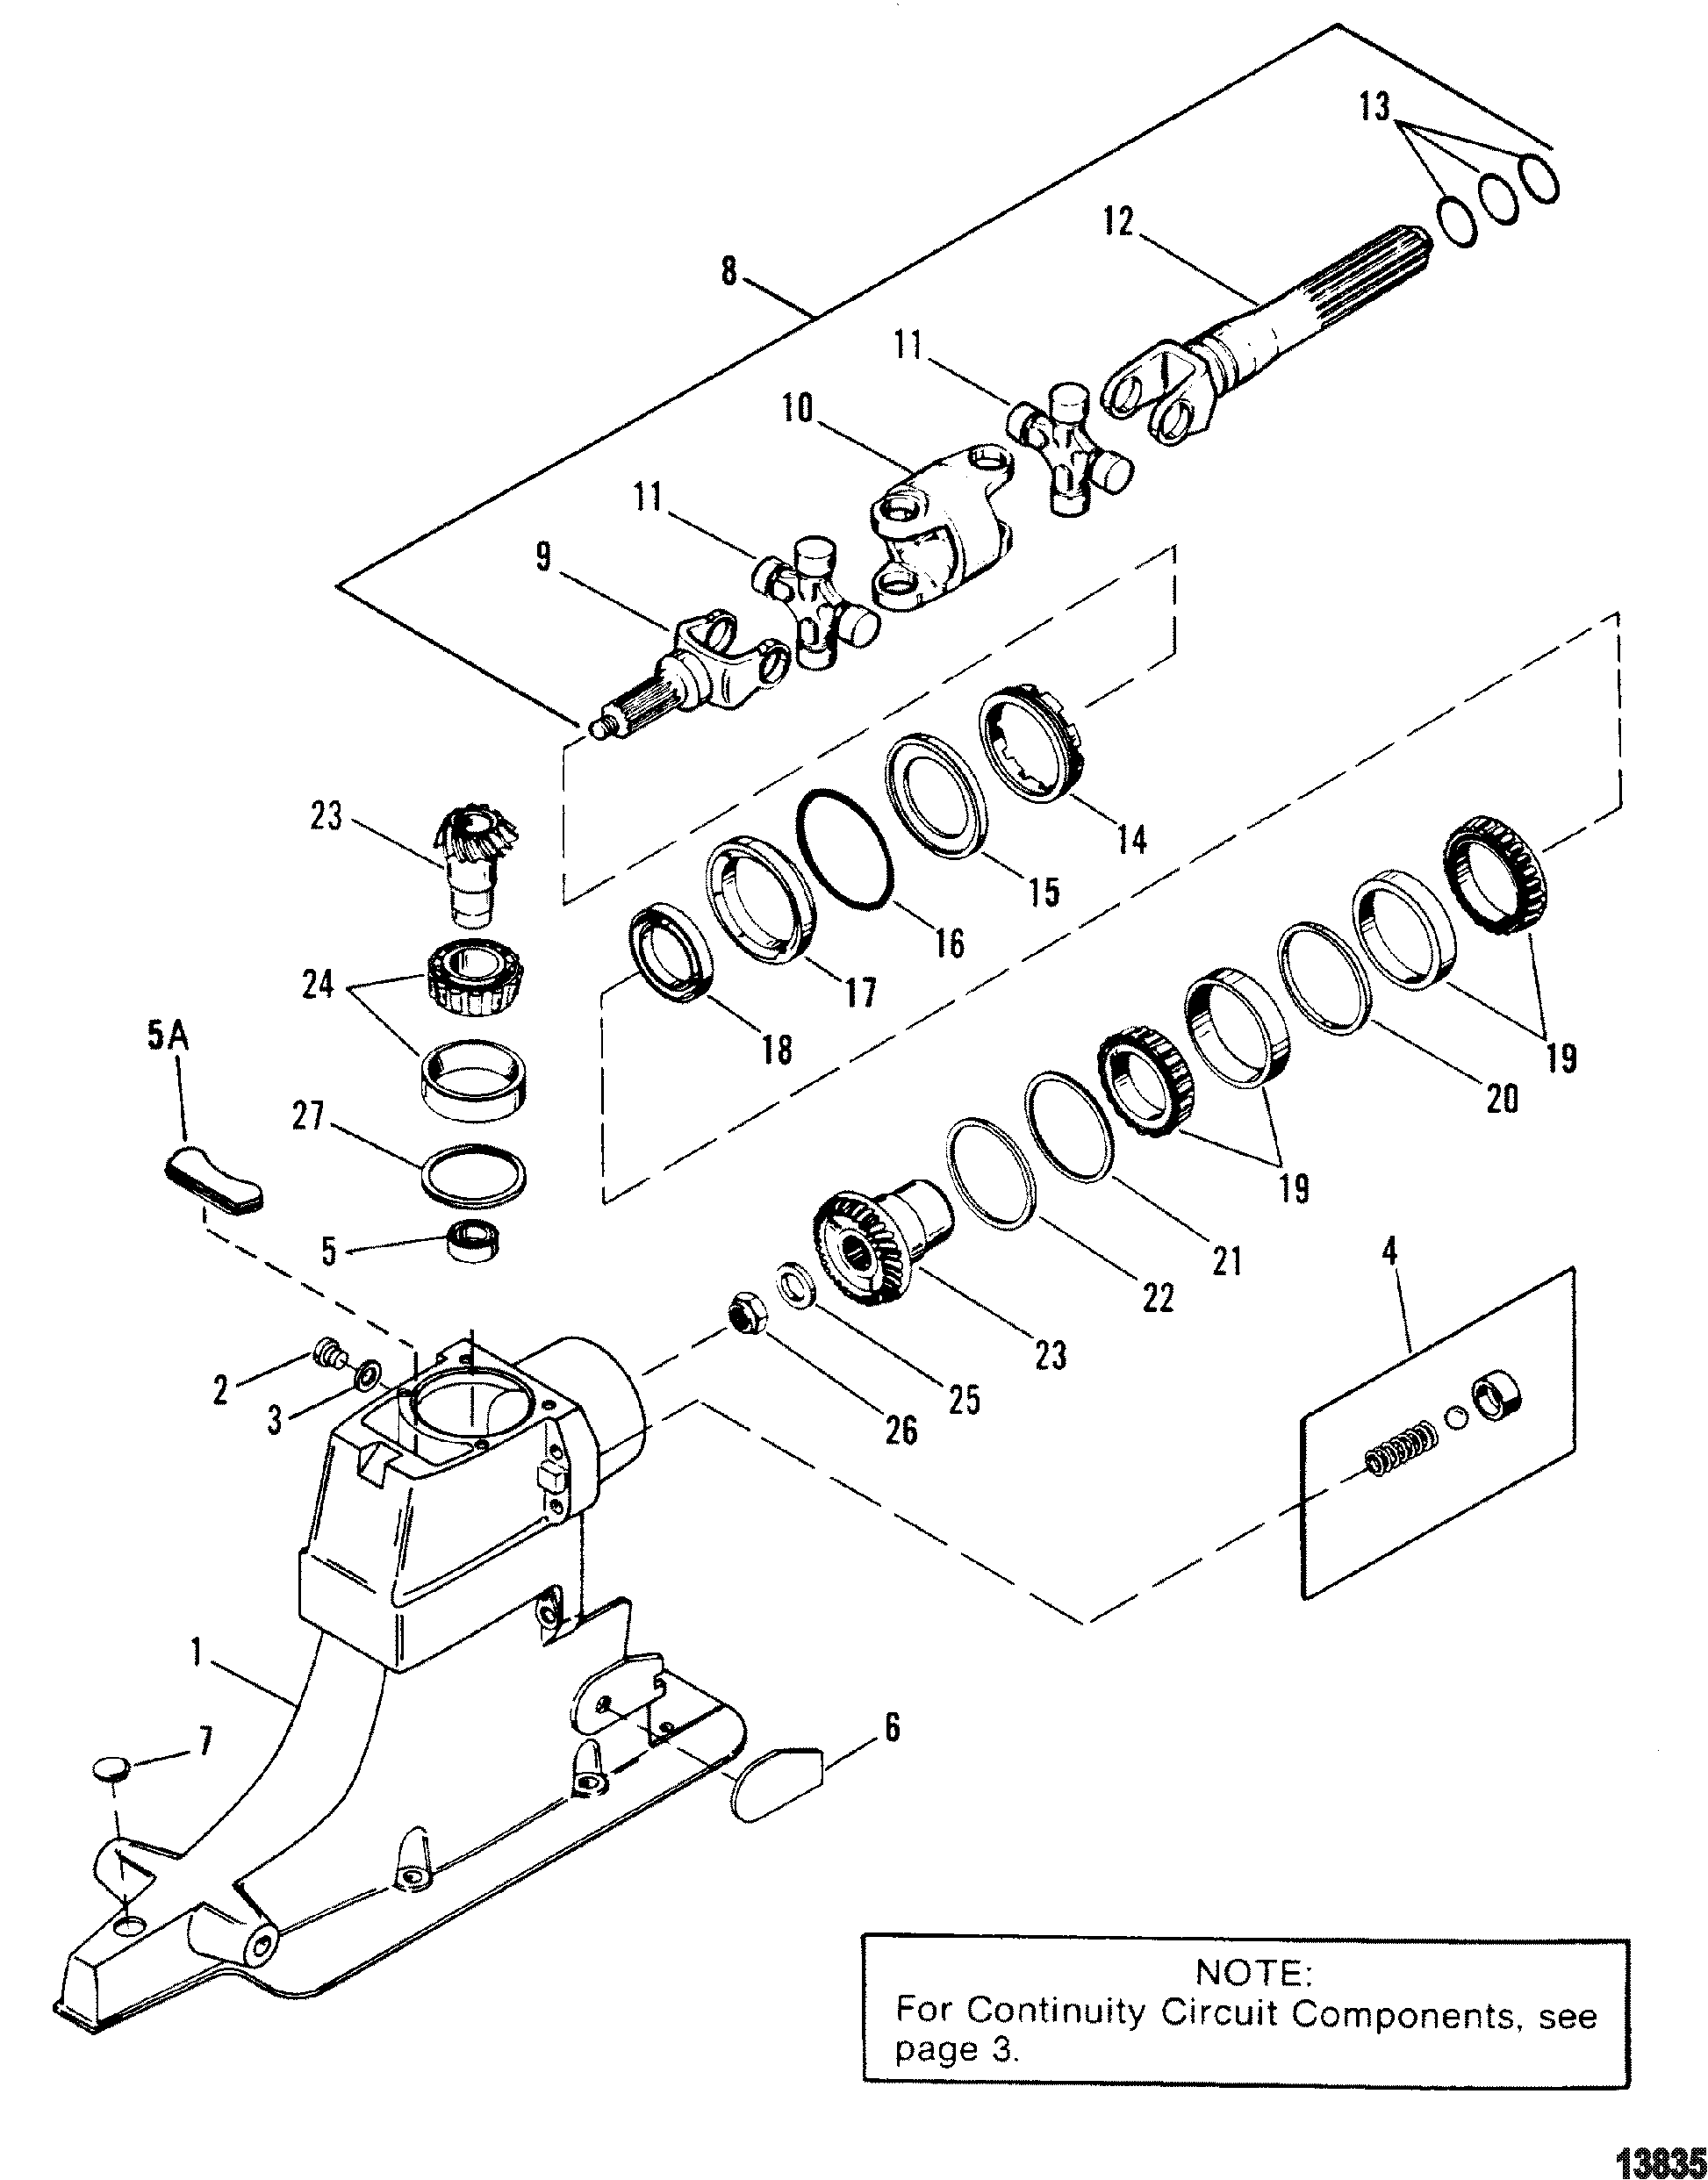 alpha 1 gen 2 parts diagram gy6 50cc scooter wiring drive shaft housing and gears for mercruiser